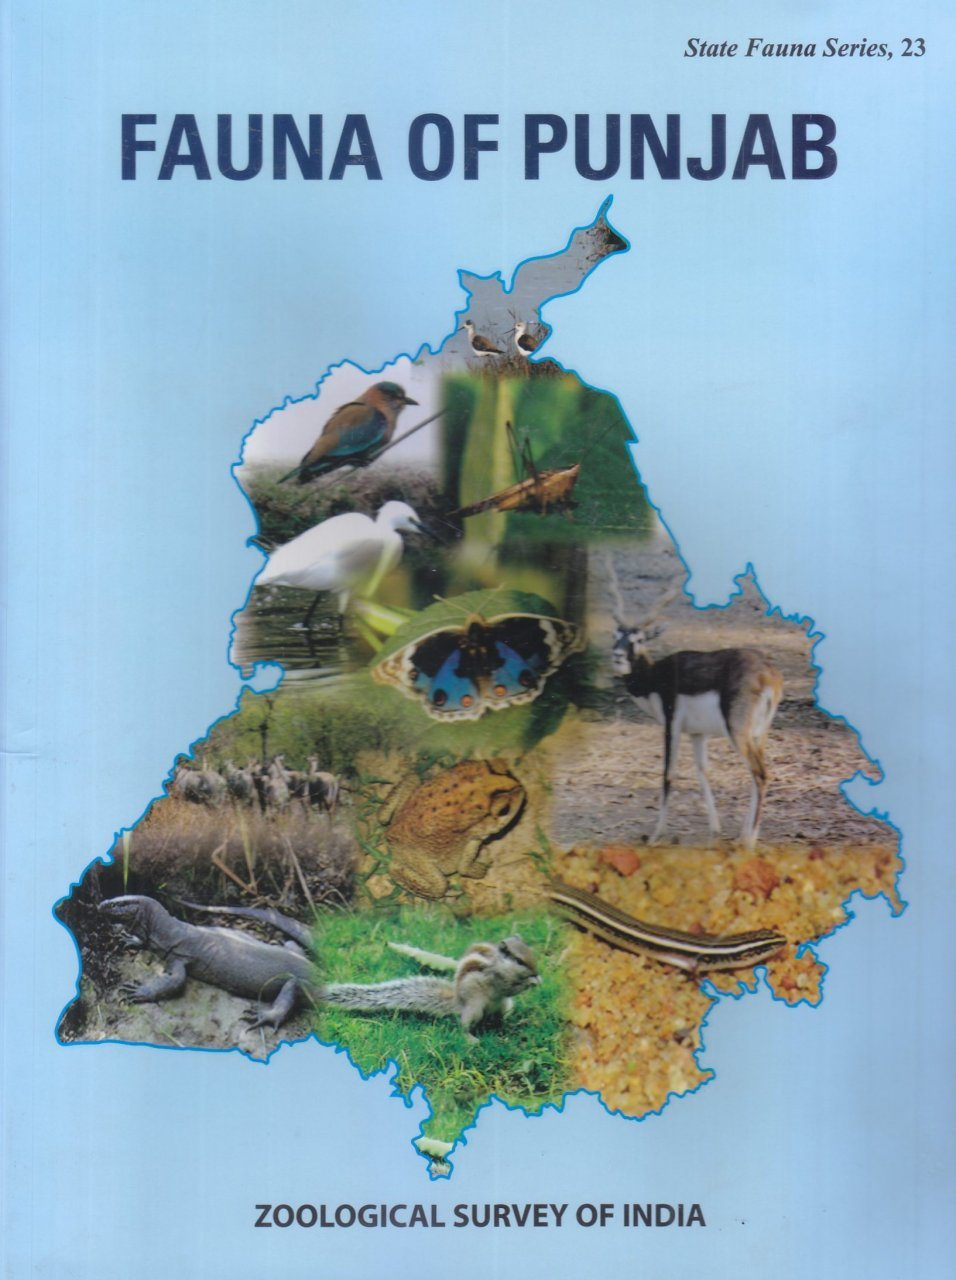 Fauna of Punjab